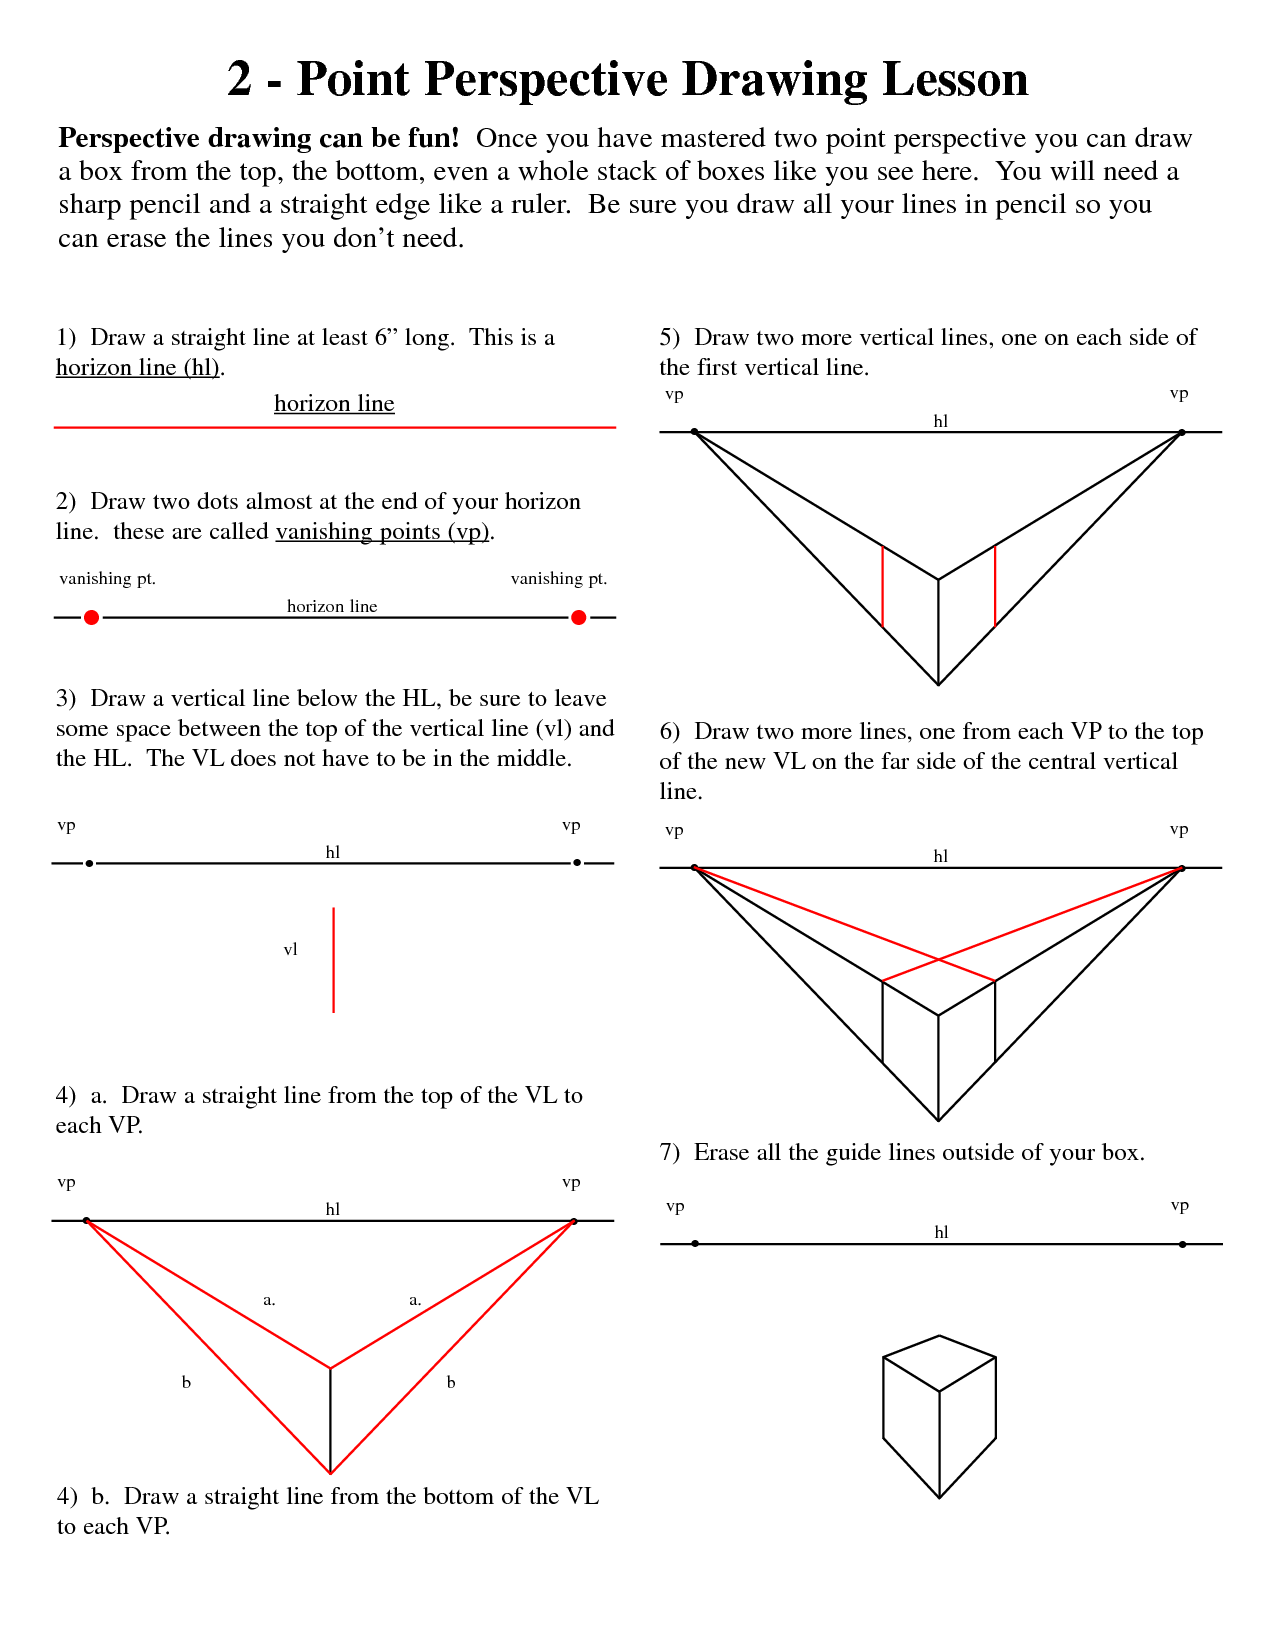 2 point perspective lesson plan template | Point Perspective Drawing ...